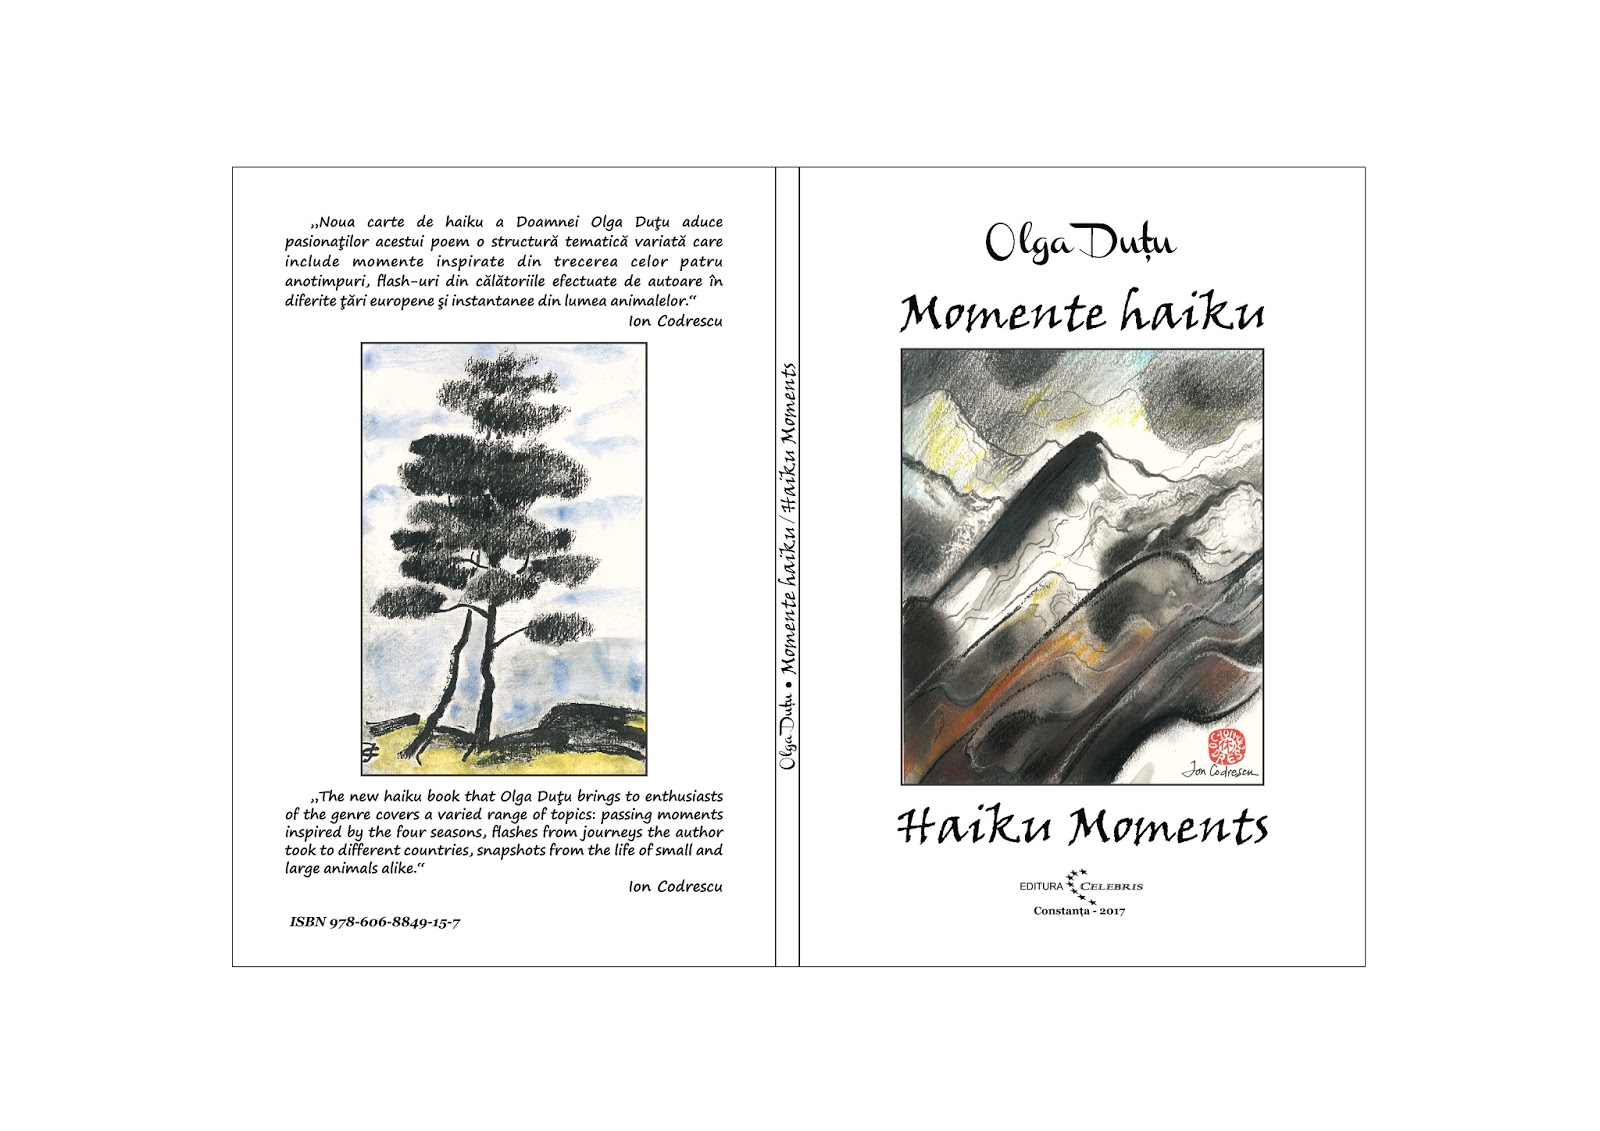 Olga Dutu, Haiku Moments